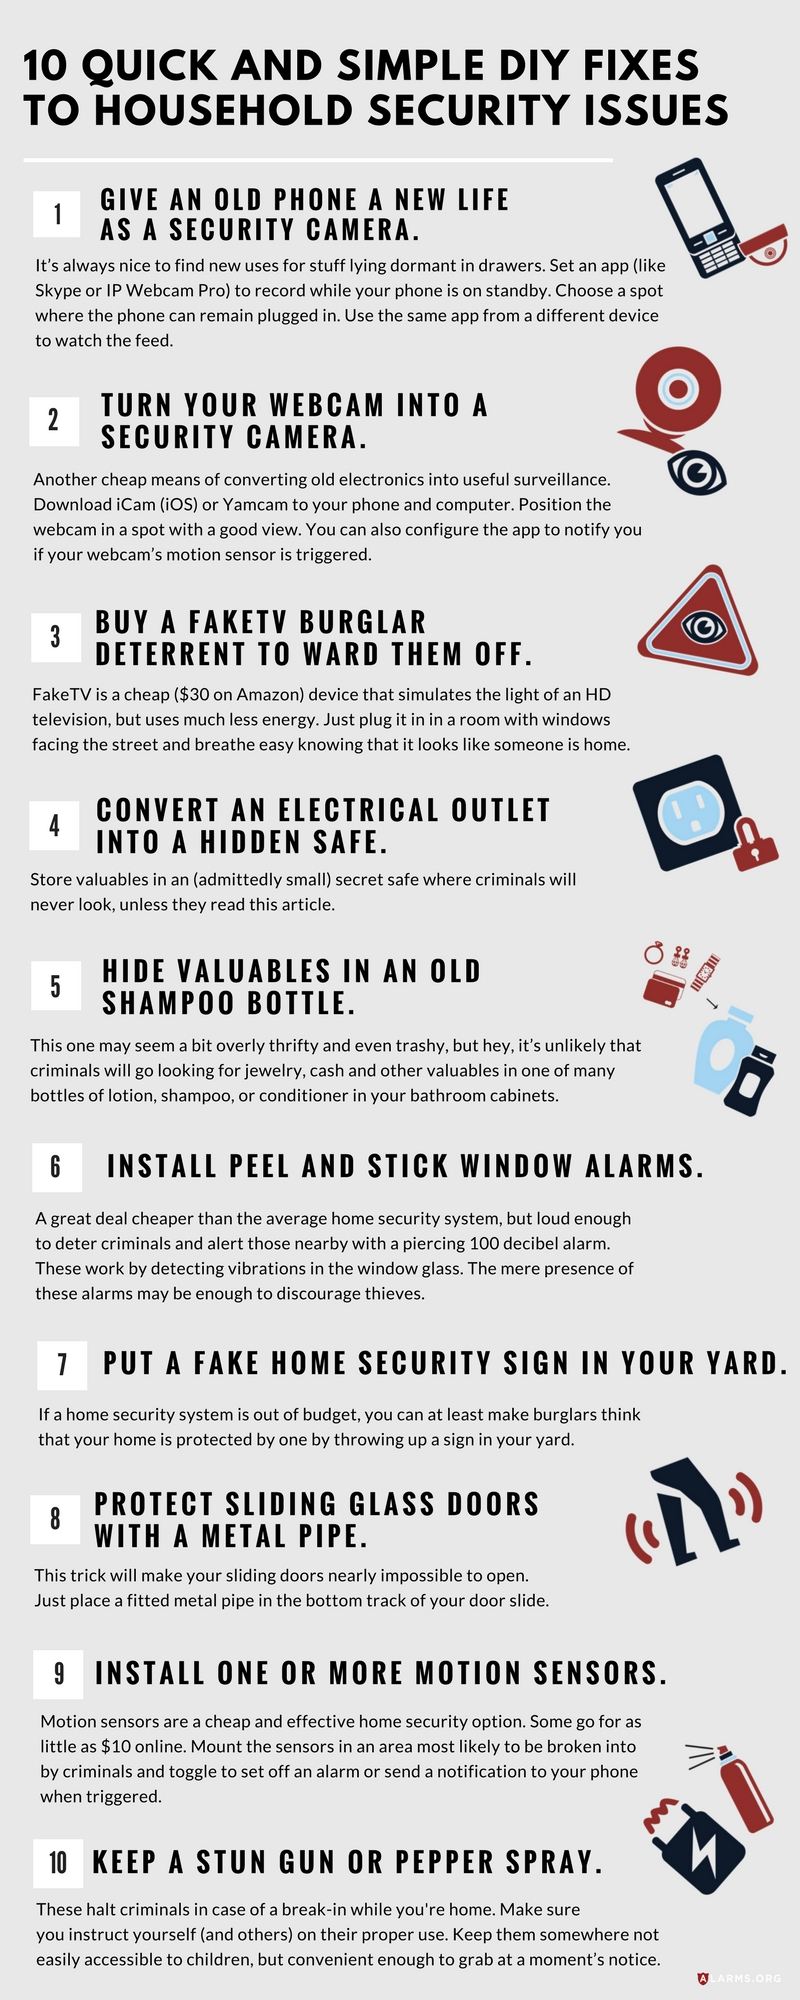 10 Quick and Simple DIY Fixes to Common Household Security Issues